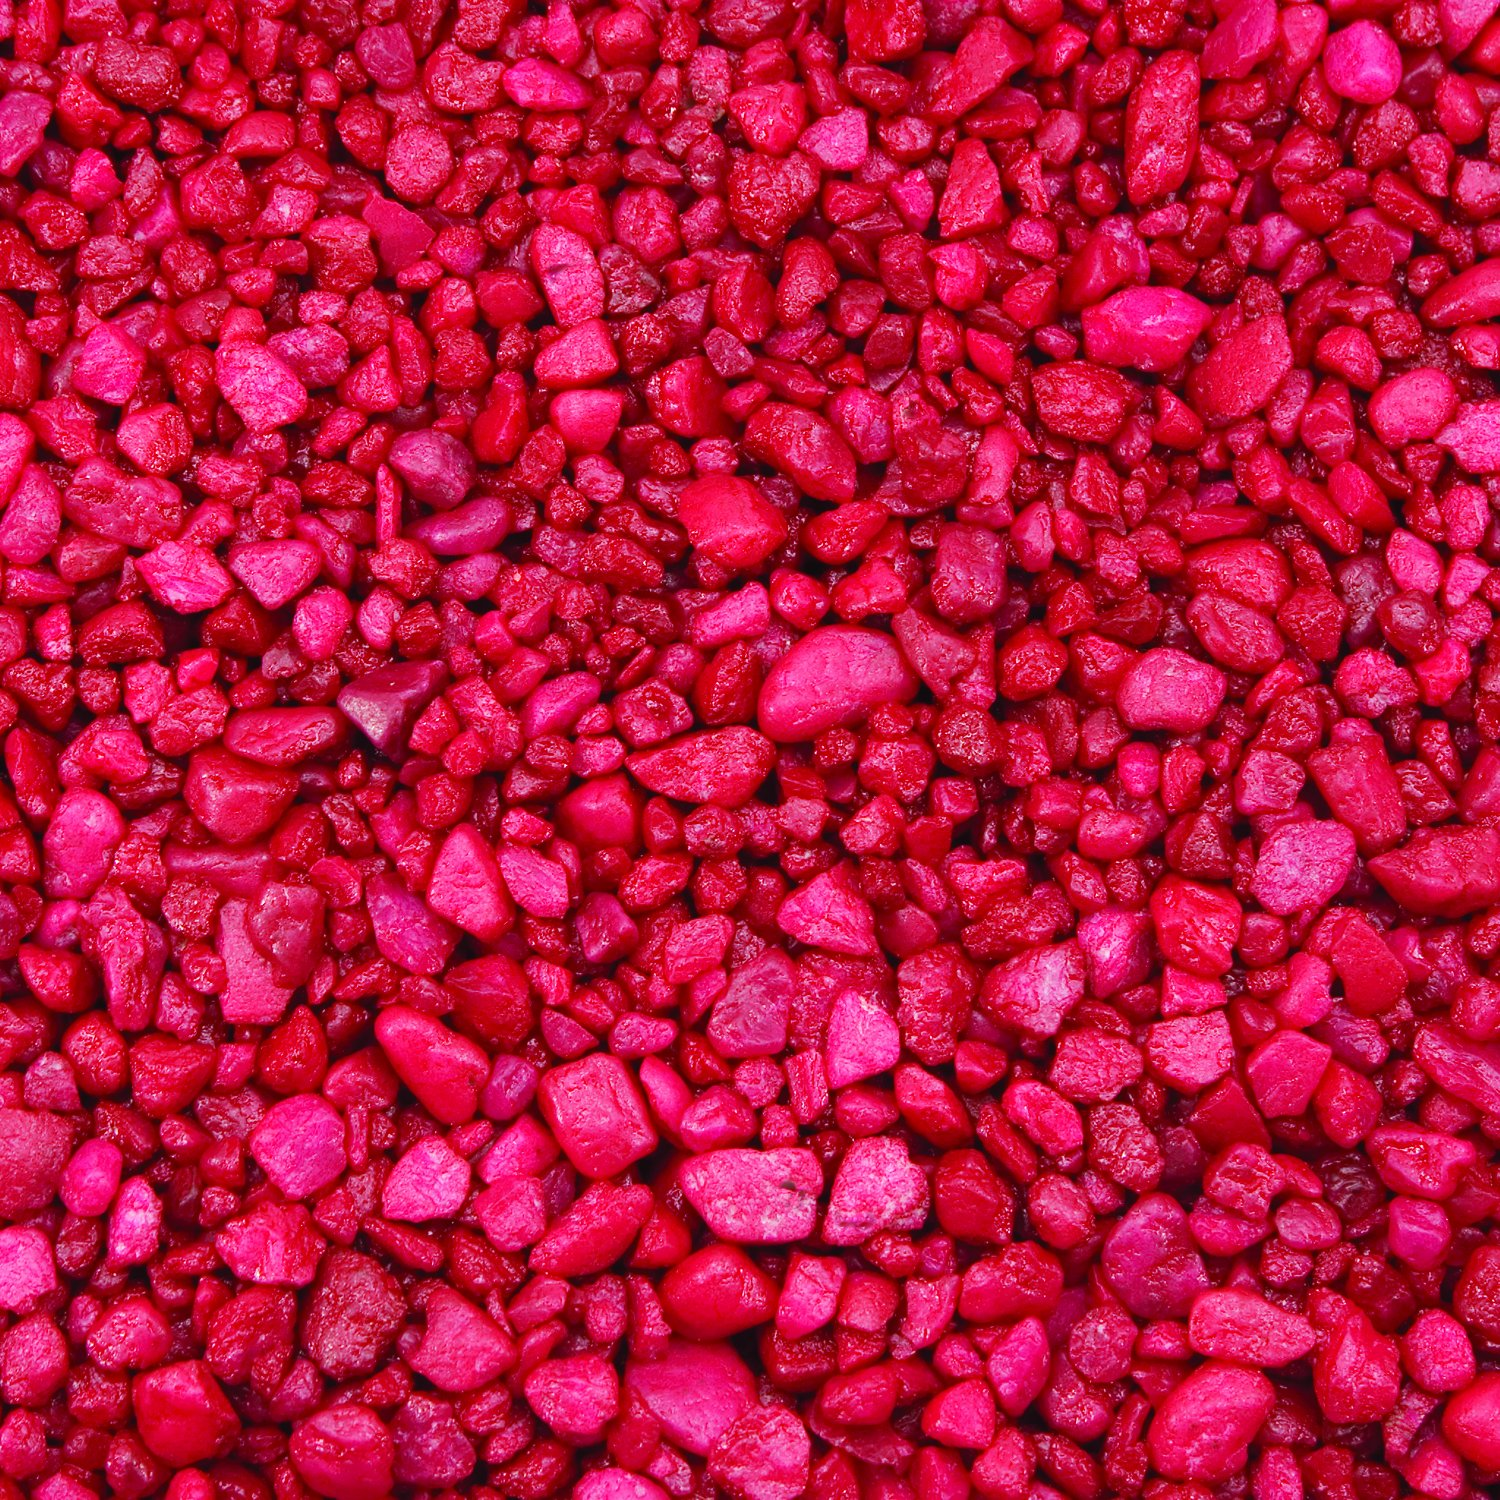 Amazon.com : Spectrastone Special Red Aquarium Gravel for Freshwater ...